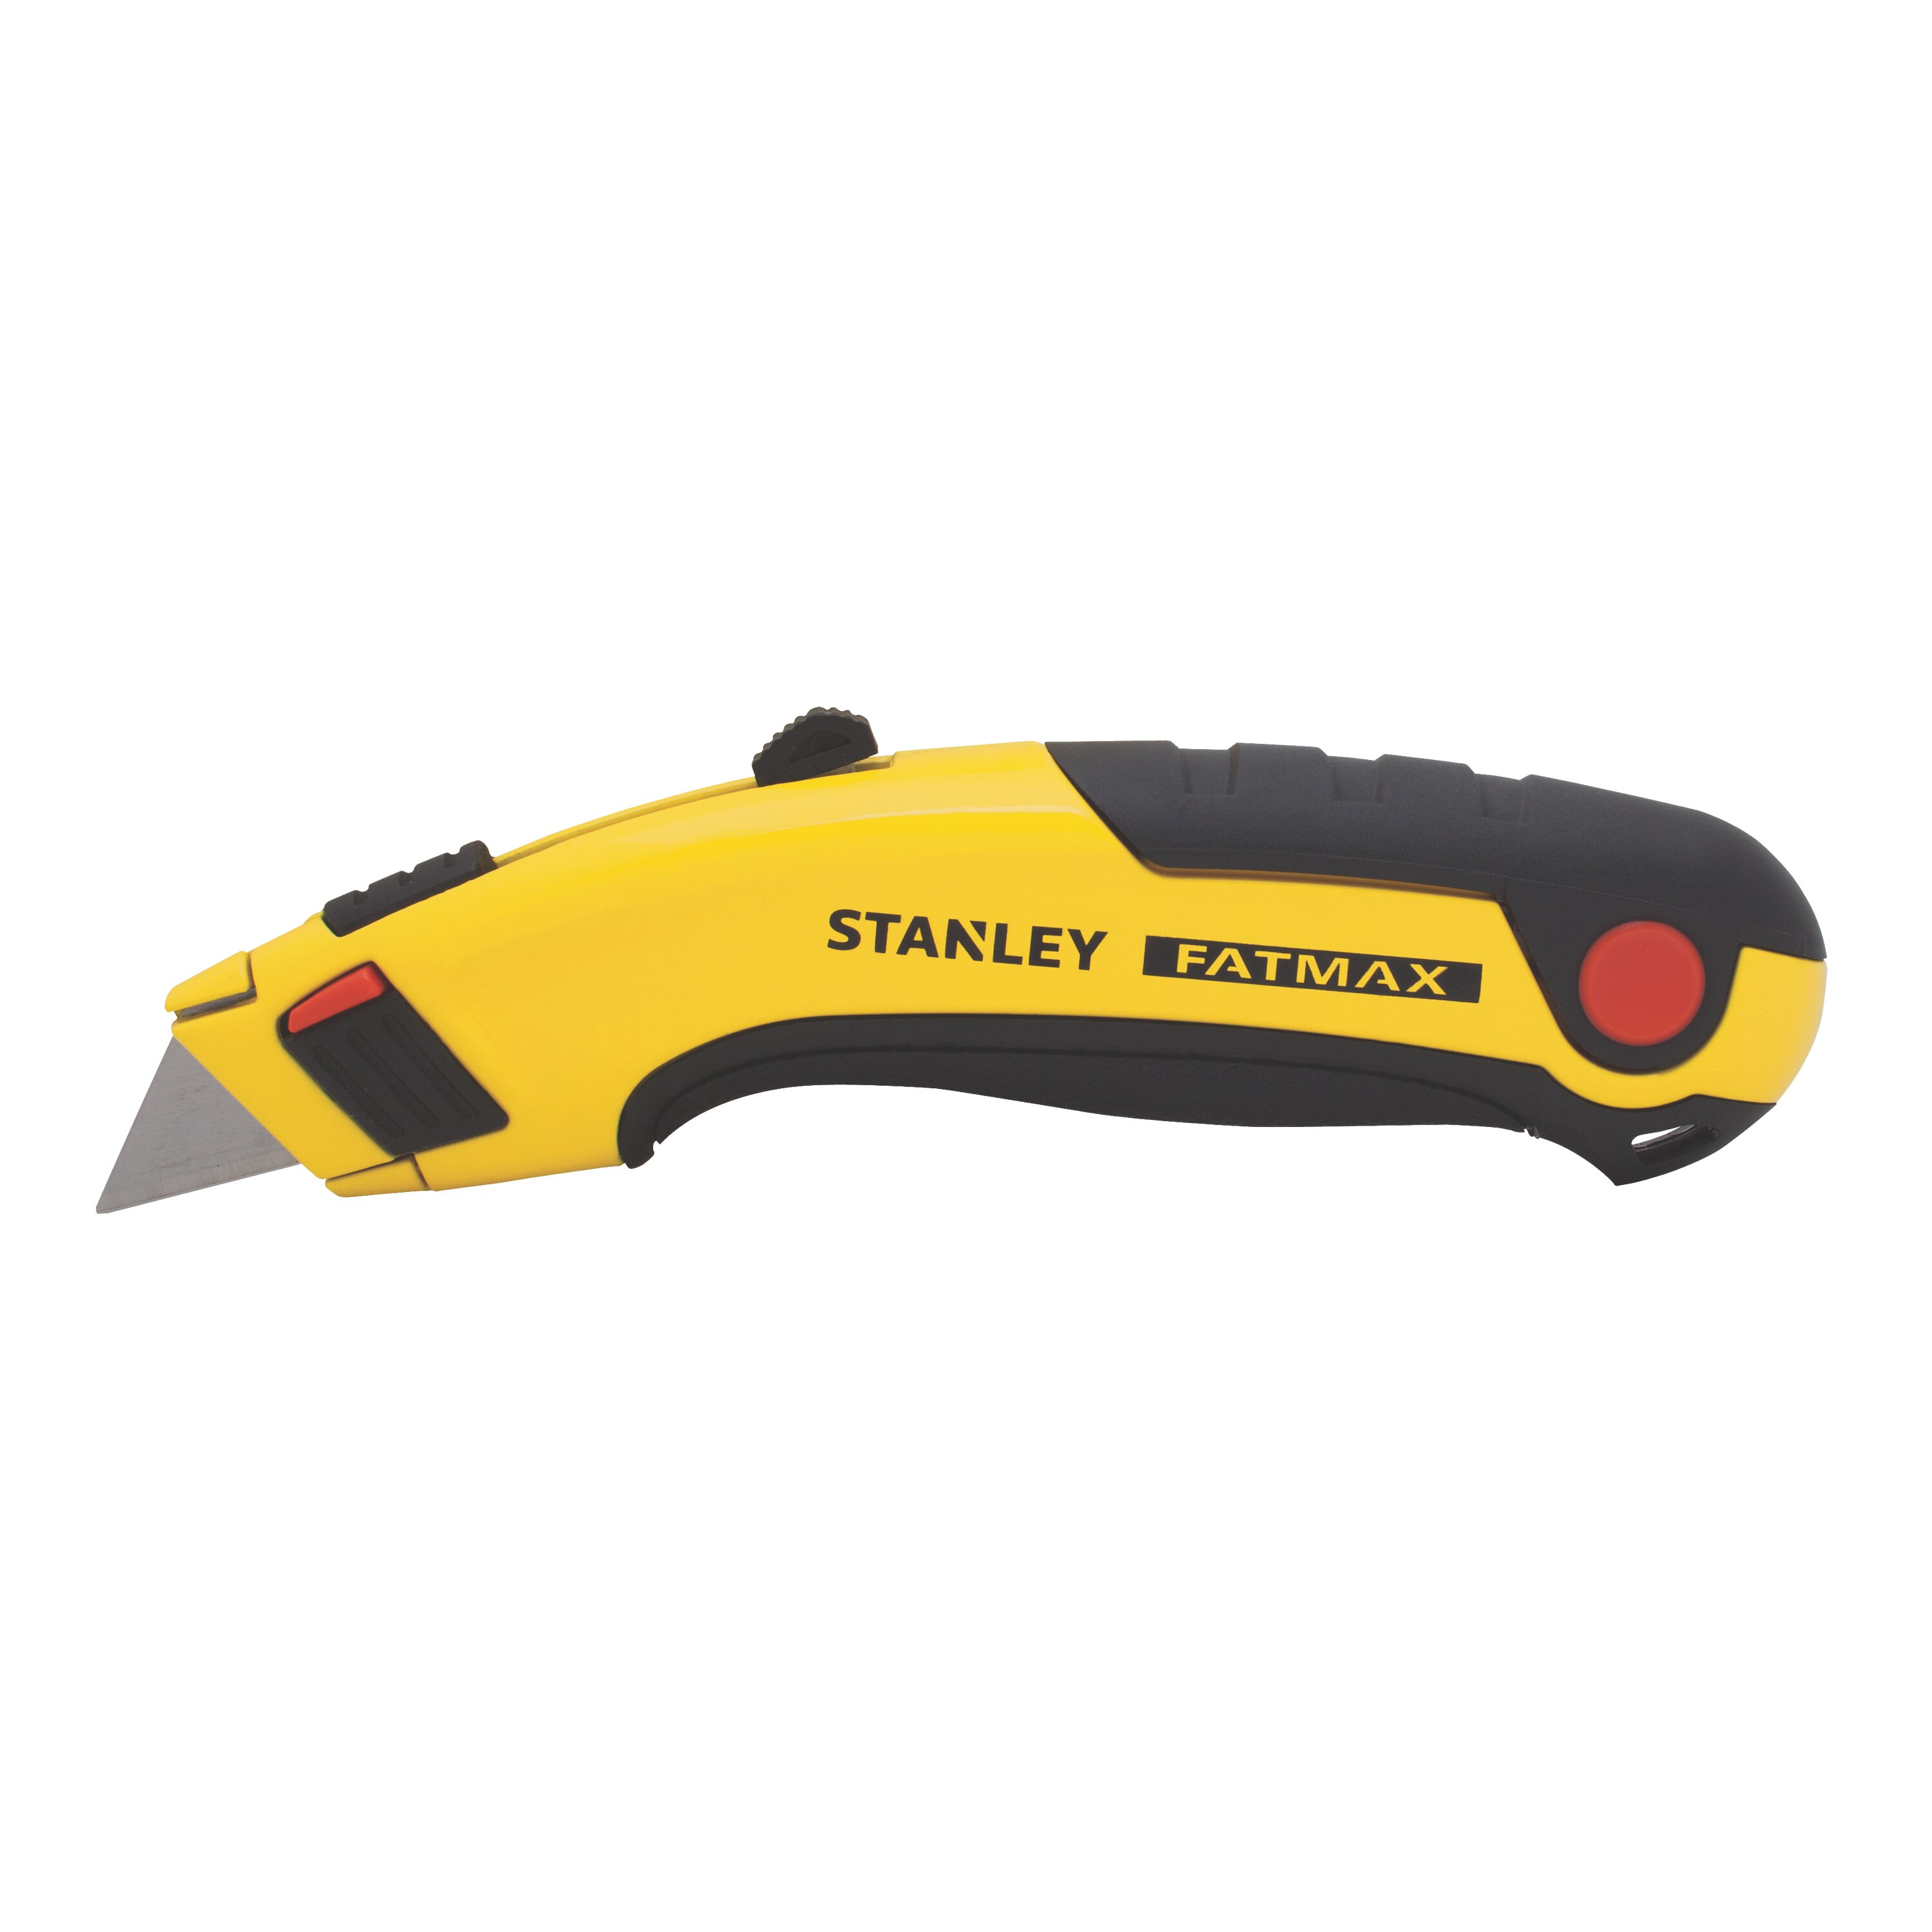 Stanley Tools - 658 in FATMAX Retractable Utility Knife - 10-778